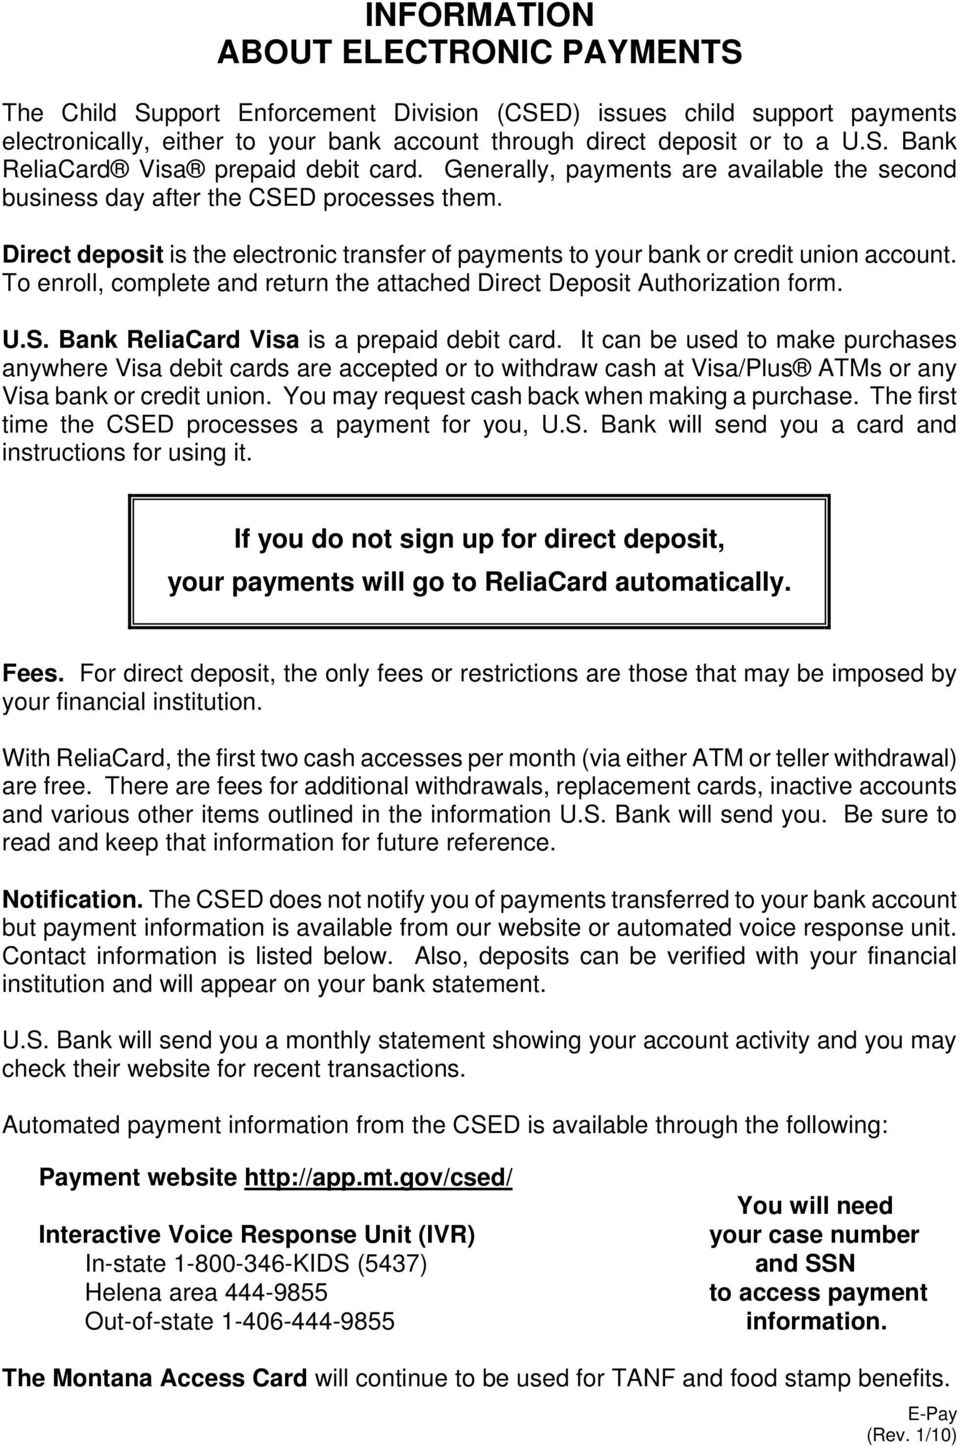 To Enroll Complete And Return The Attached Direct Deposit Authorization Form US Bank ReliaCard